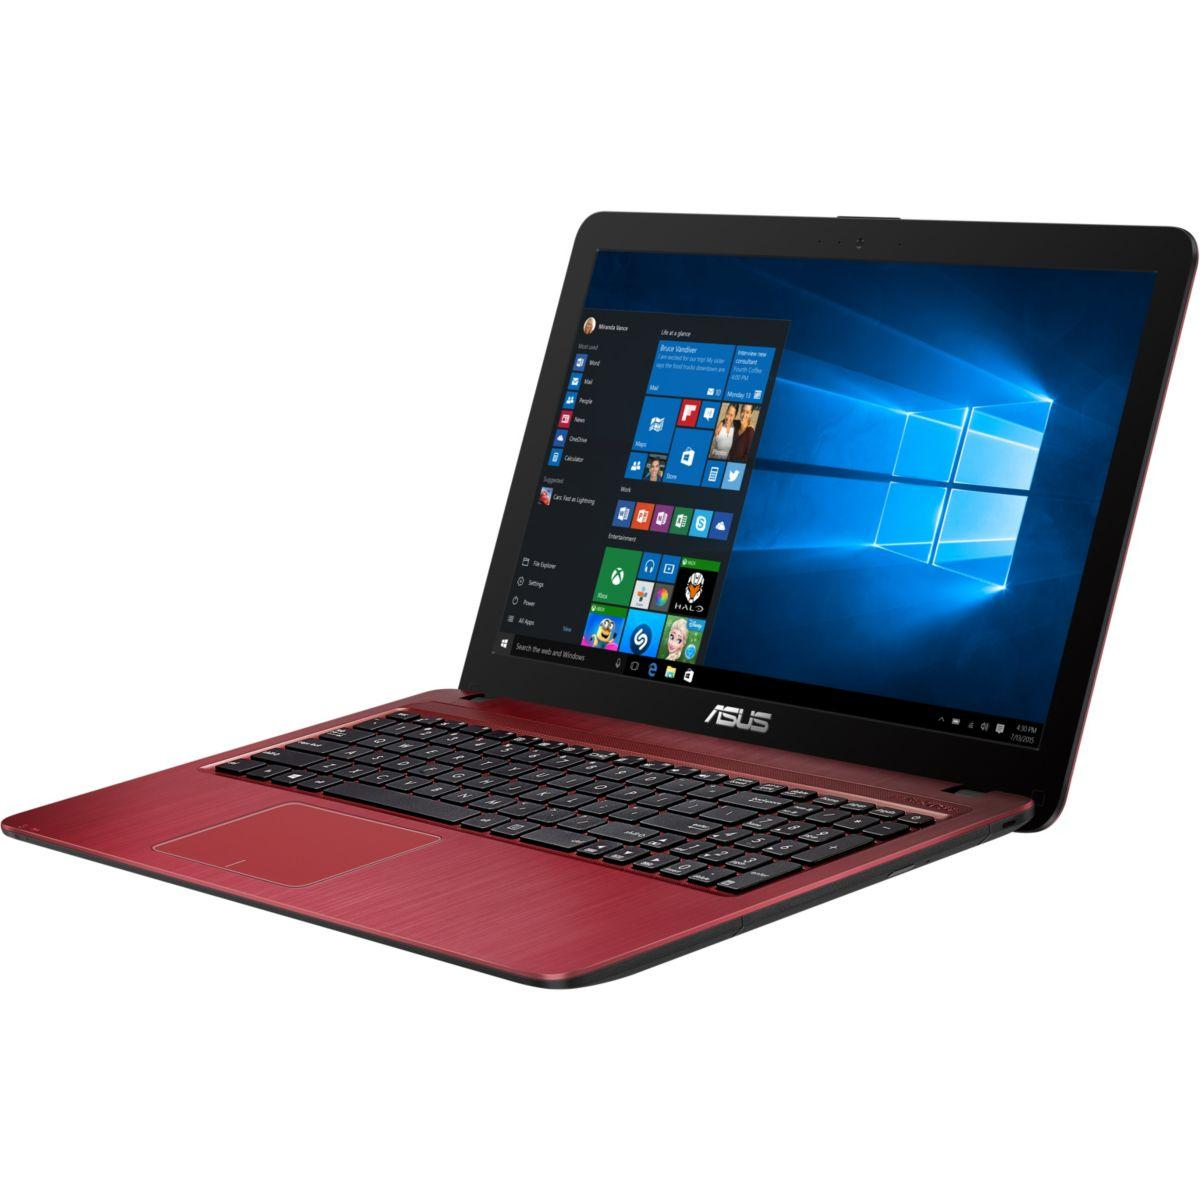 Portable asus r541uv-dm453t - 5% de remise : code multi5 (photo)